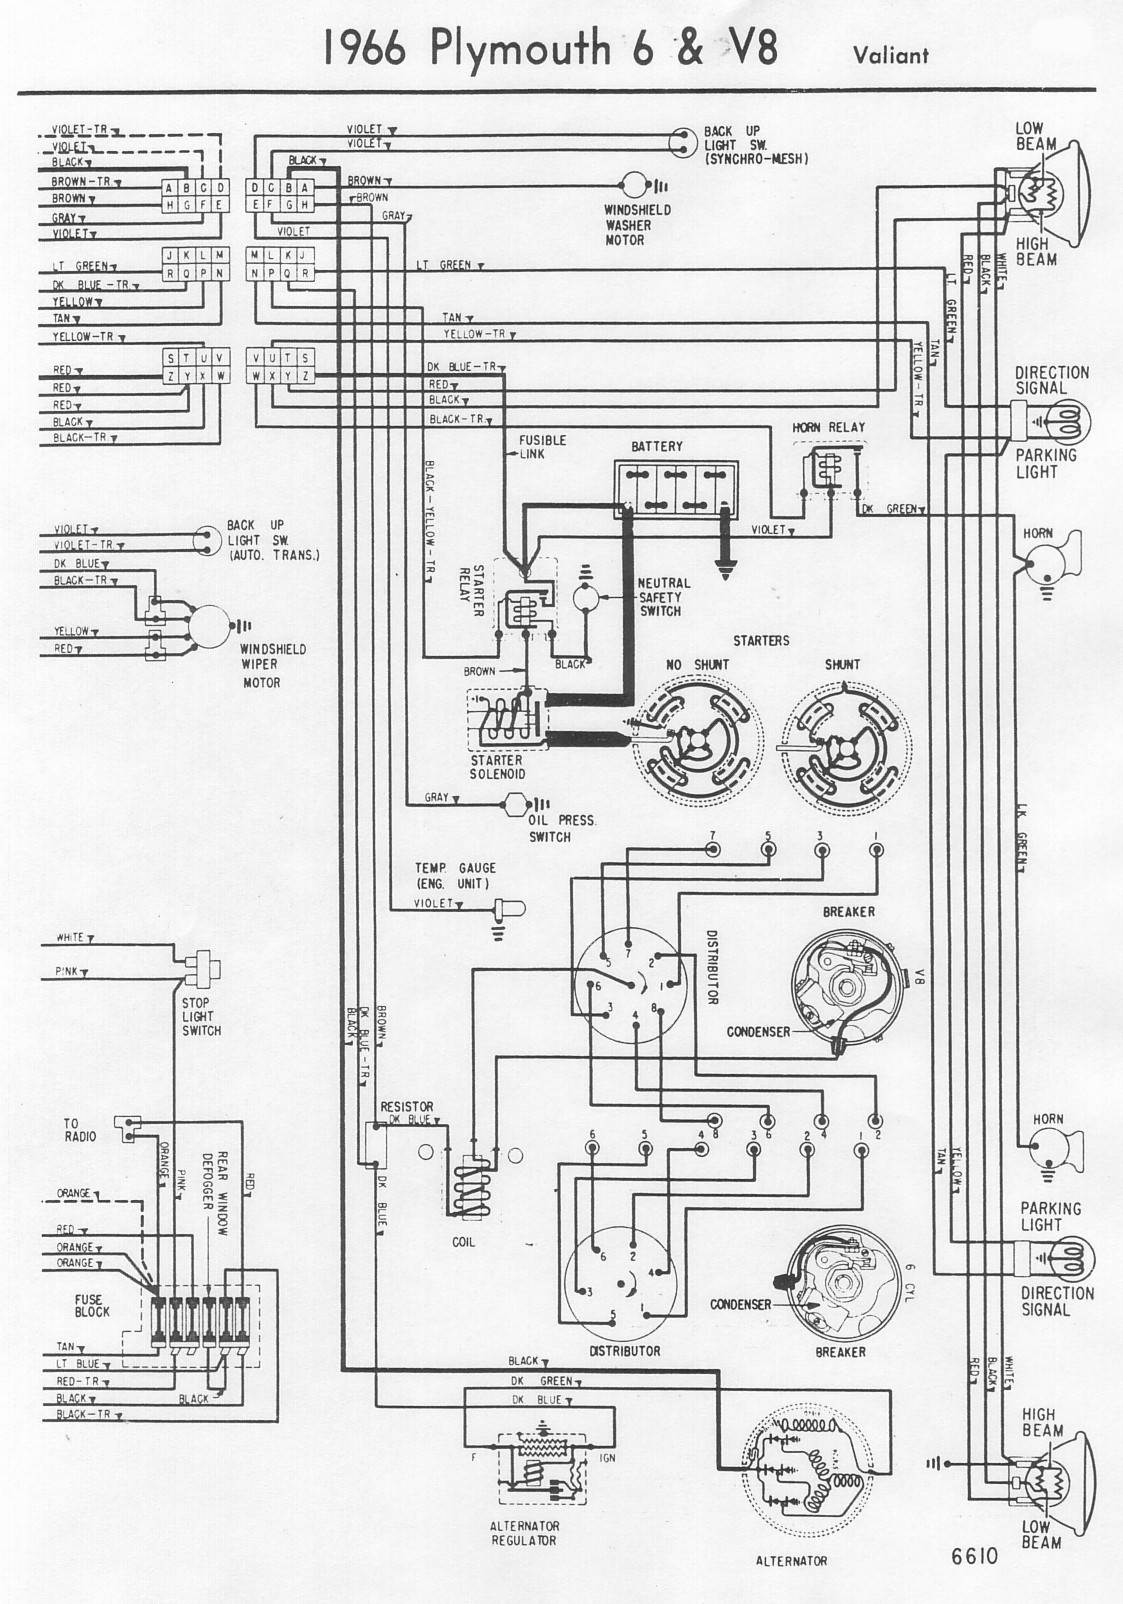 66ValiantB?quality\\\\\\\\\=80\\\\\\\\\&strip\\\\\\\\\=all wiring diagram 2003 honda trx350fm honda atc250r, honda trx350 honda rancher 350 wiring diagram at gsmx.co